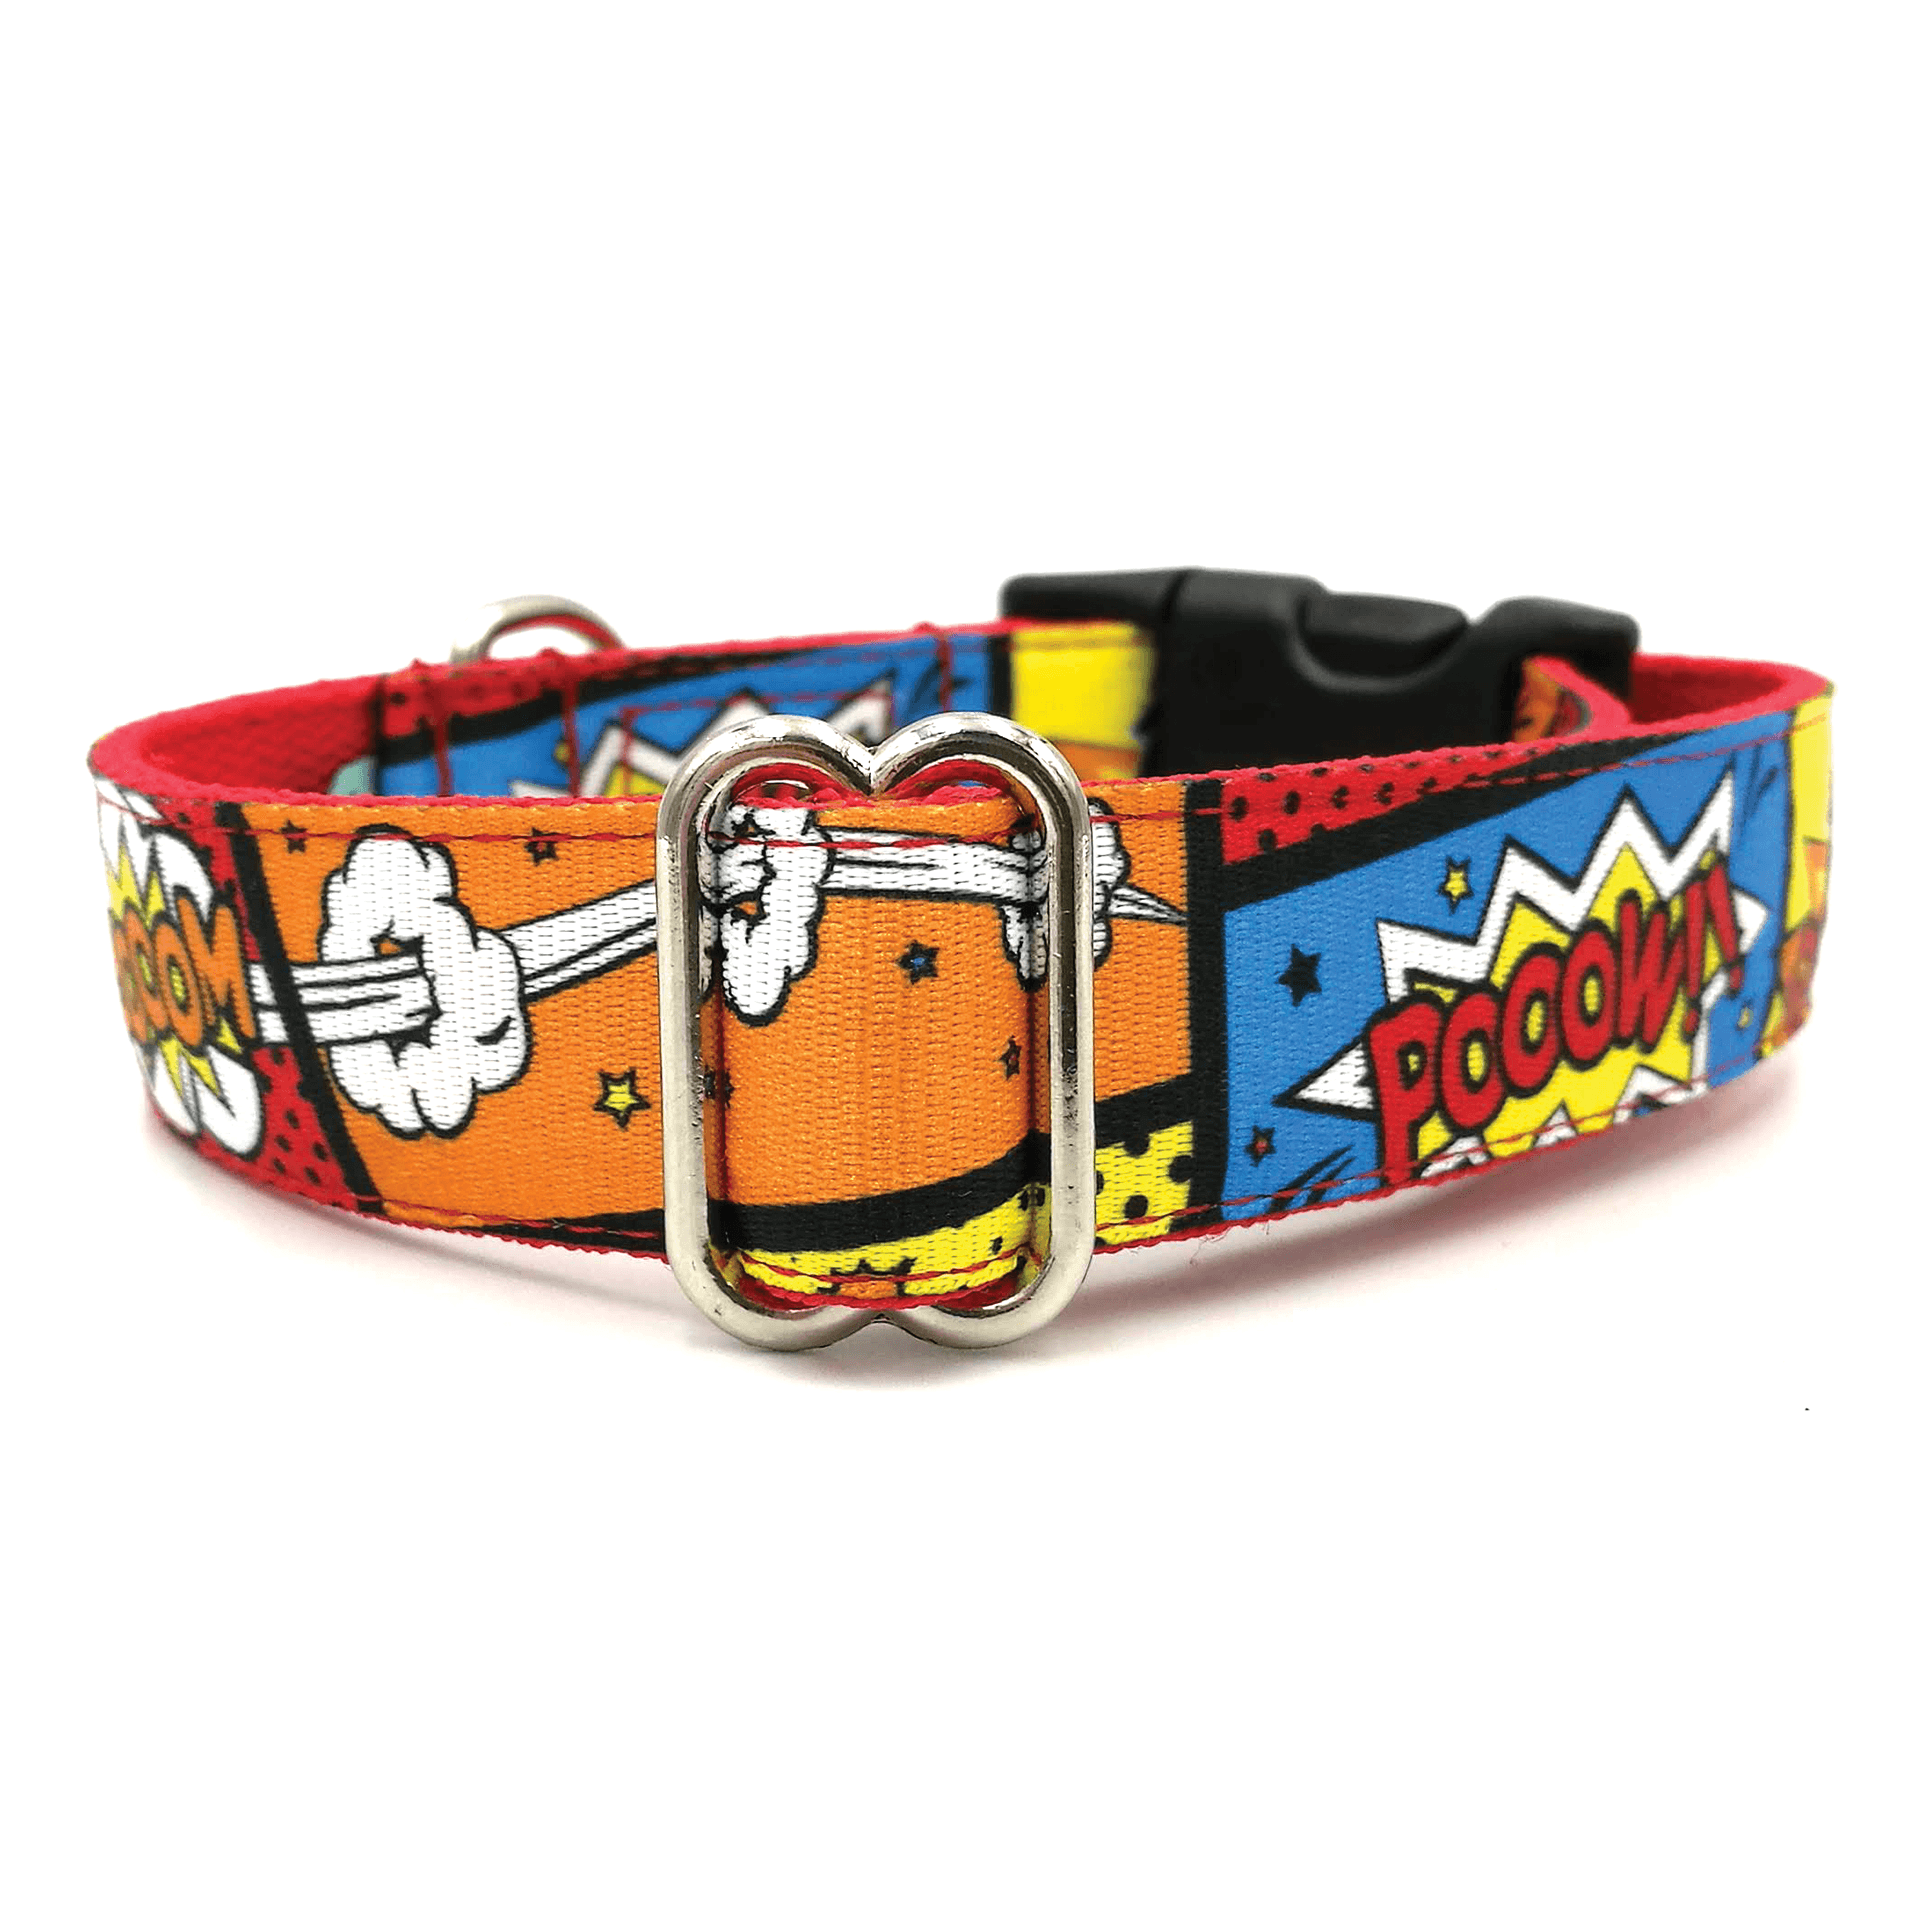 Bang dog collar